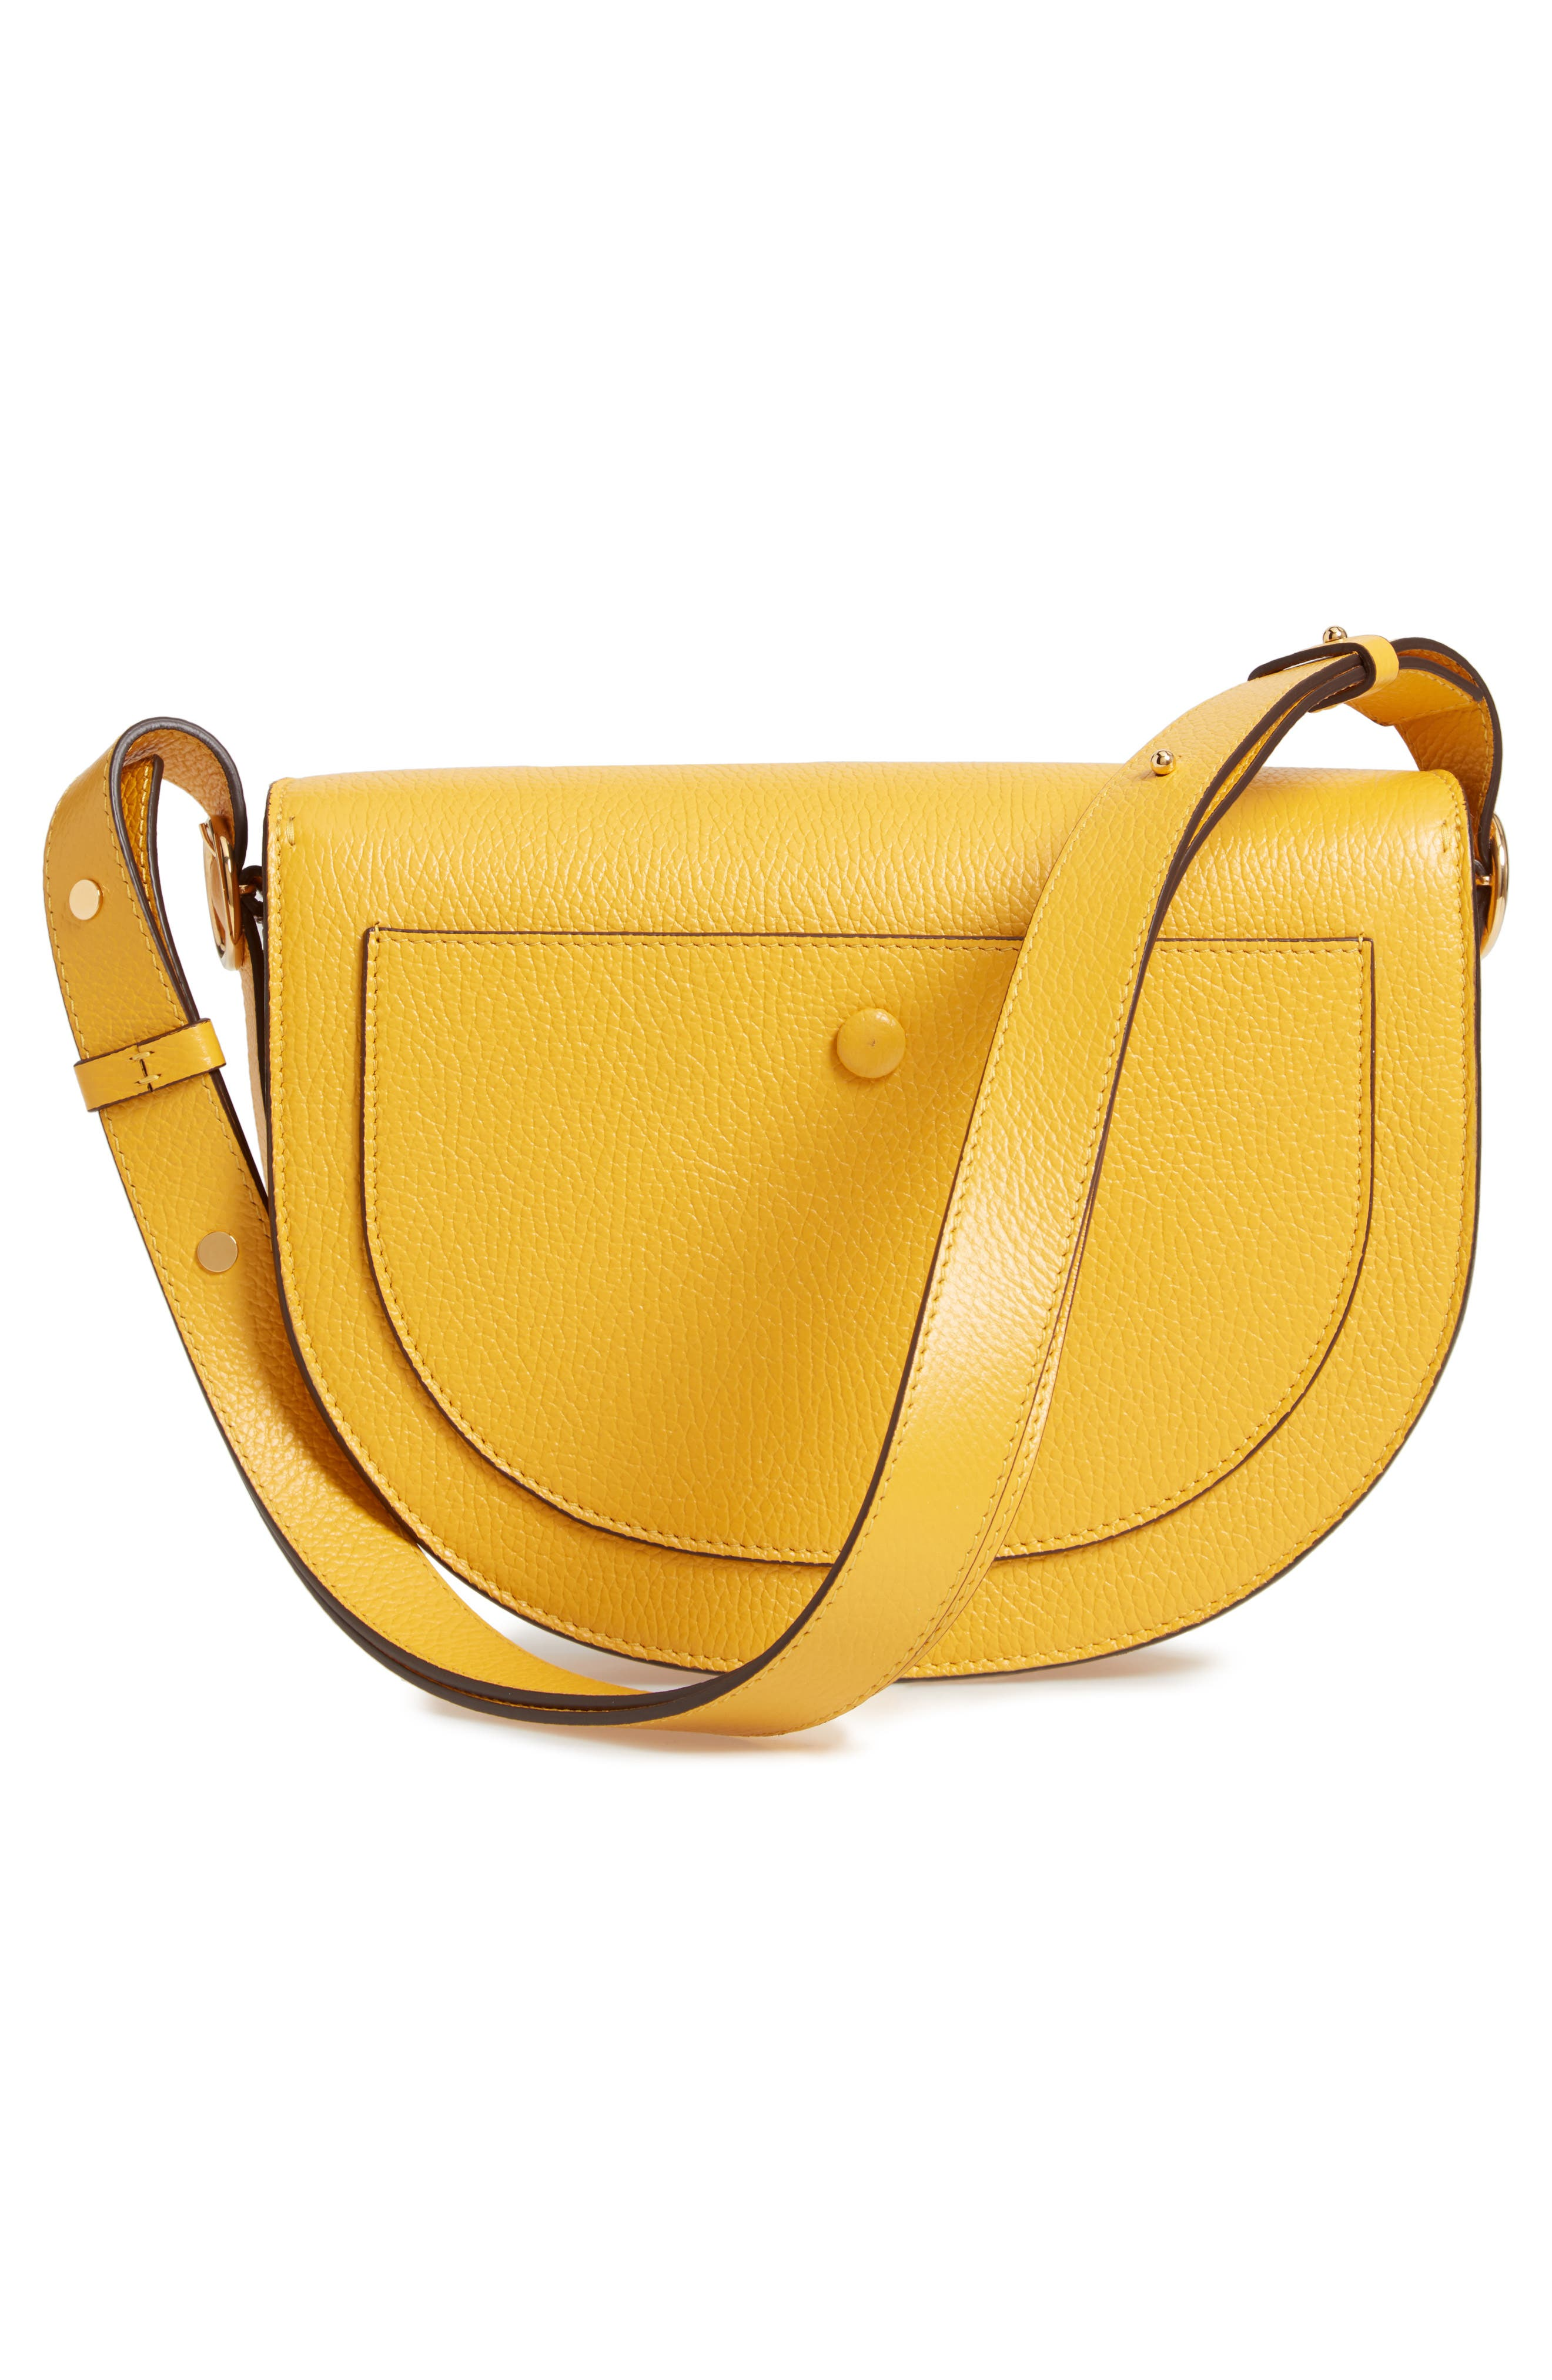 VICTORIA BECKHAM, Half Moon Box Shoulder Bag, Alternate thumbnail 3, color, YELLOW